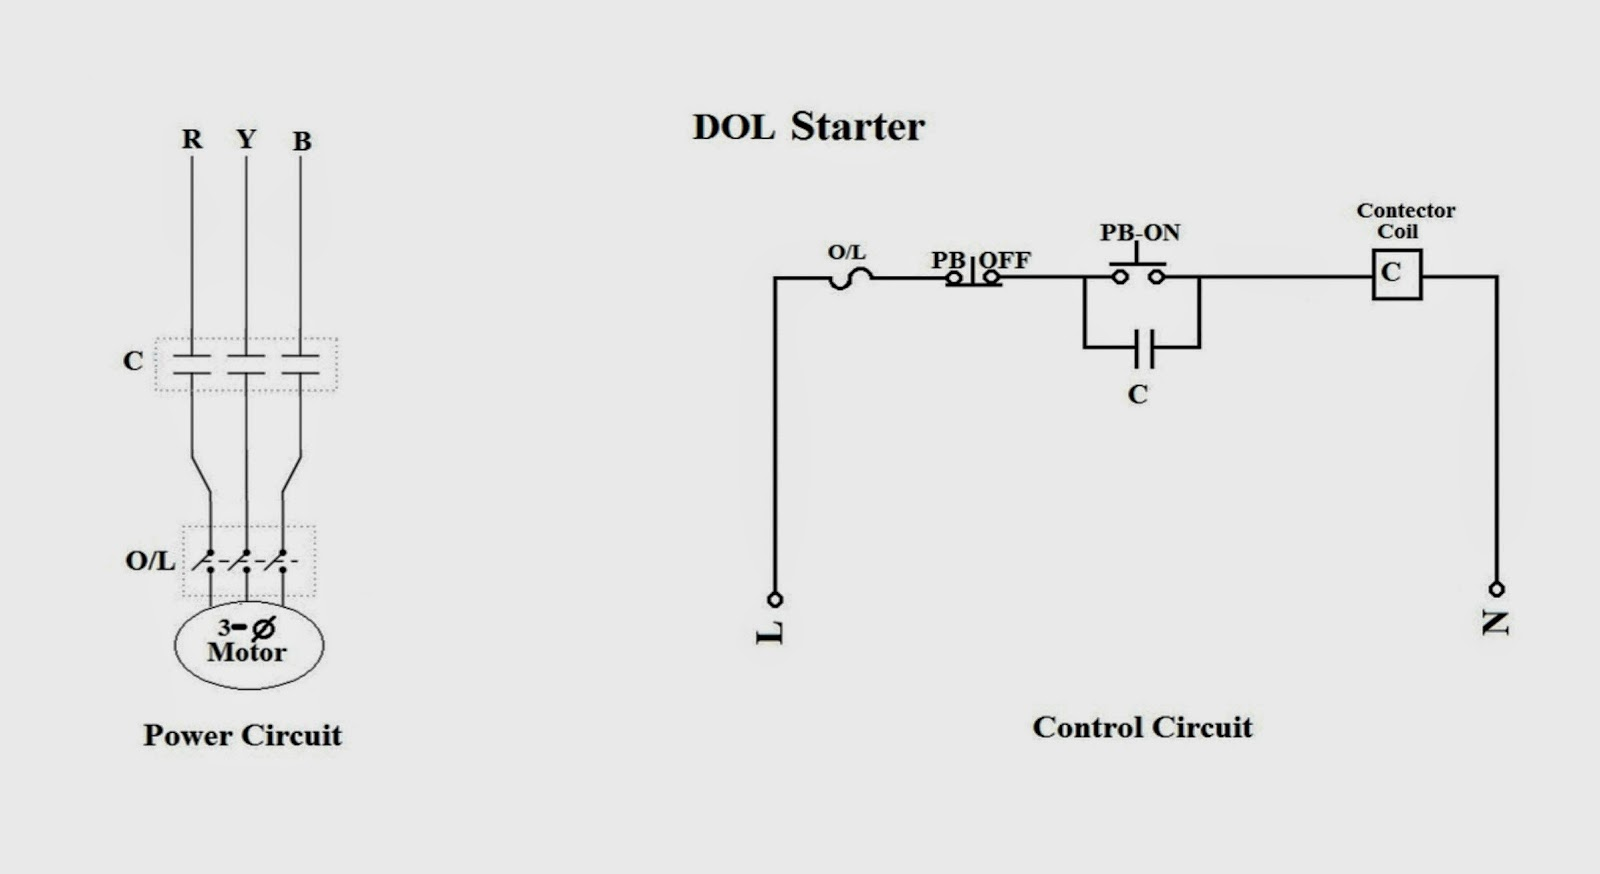 Training Report On Bokaro Steel Plant Common Electrical Doubts Wound Rotor Induction Motor Serial Reactor Stepdown Starting Circuit To Start The Push Button Is Pressed This Energises Contactors Coil And No Contact Get Closed Completes Power